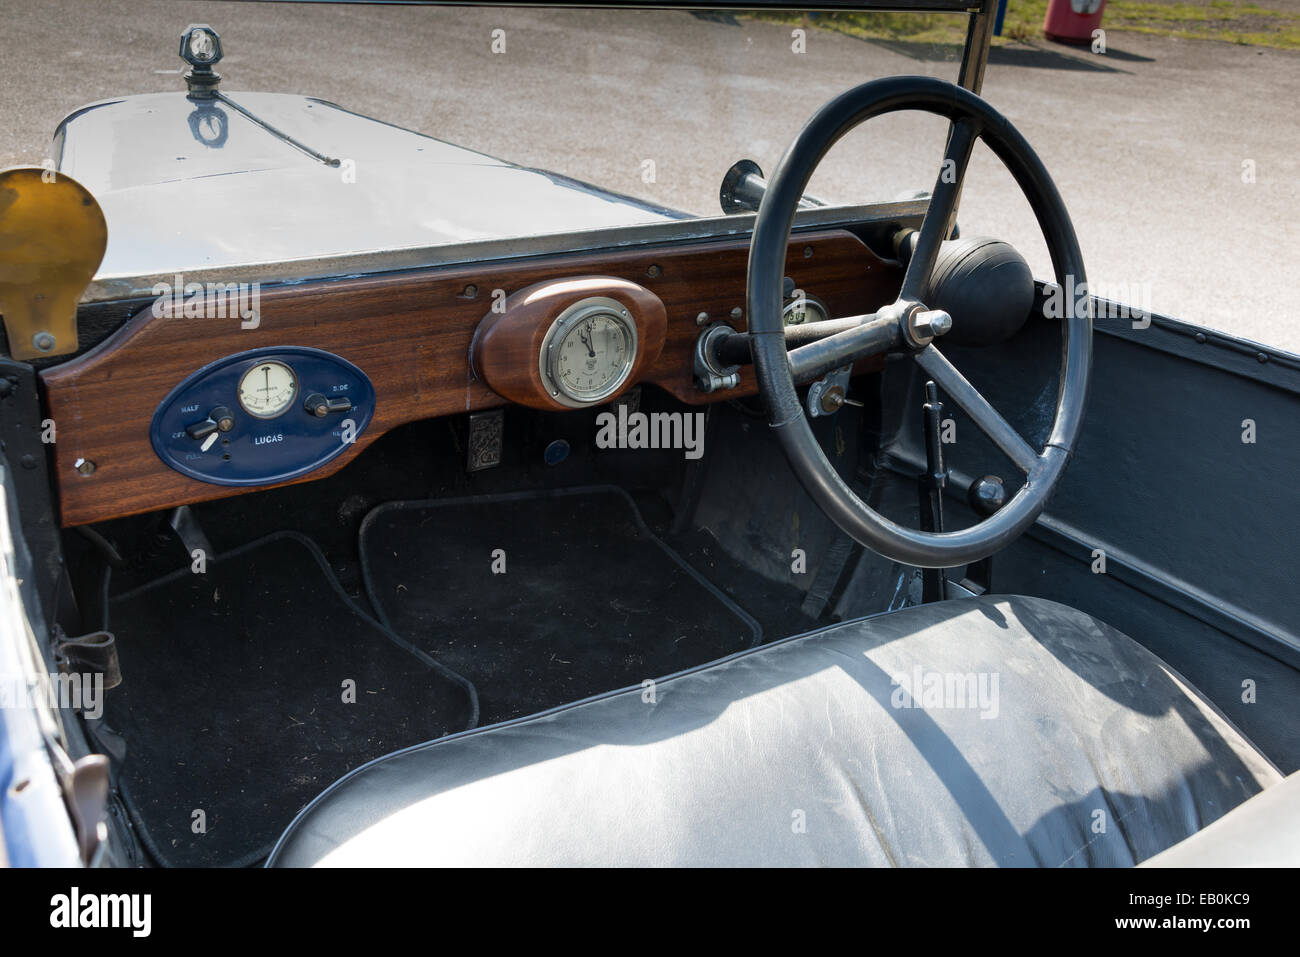 Biggleswade, UK - 29 June 2014: Interior of a vintage Jowett Type C car (1926) on display at the Shuttleworth Collection - Stock Image